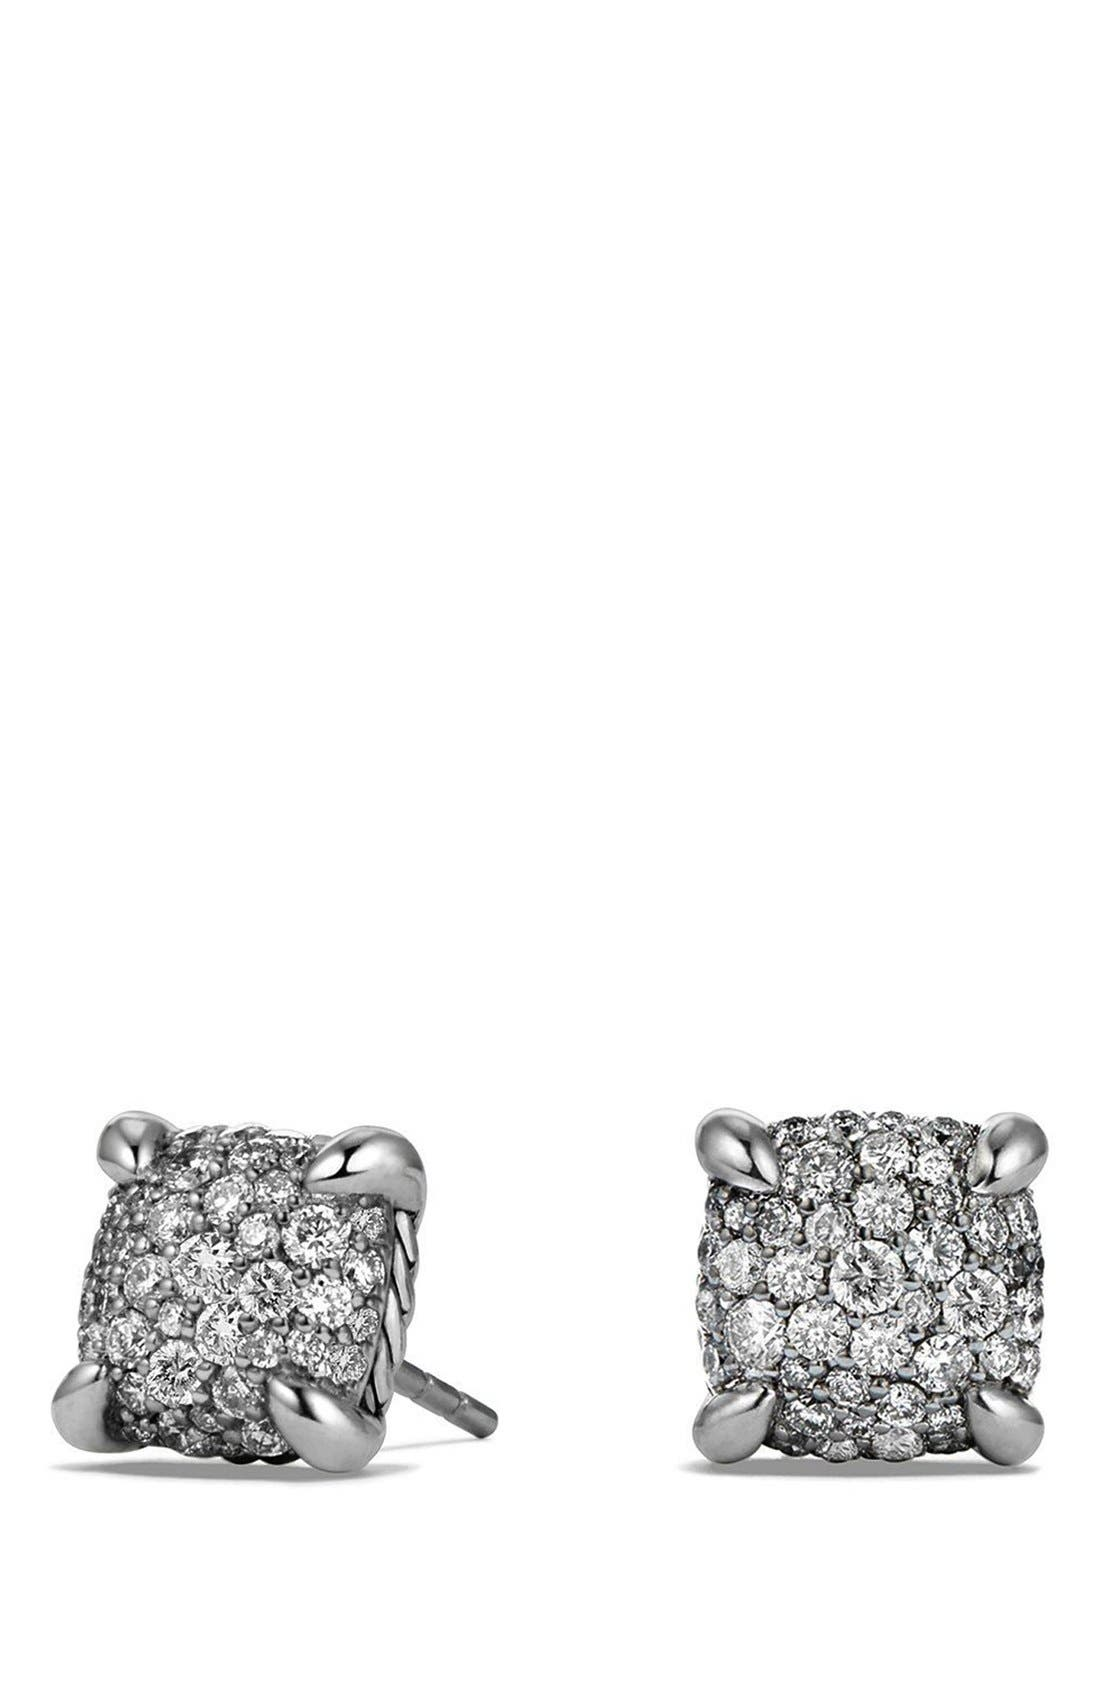 Main Image - David Yurman 'Châtelaine' Earrings with Diamonds